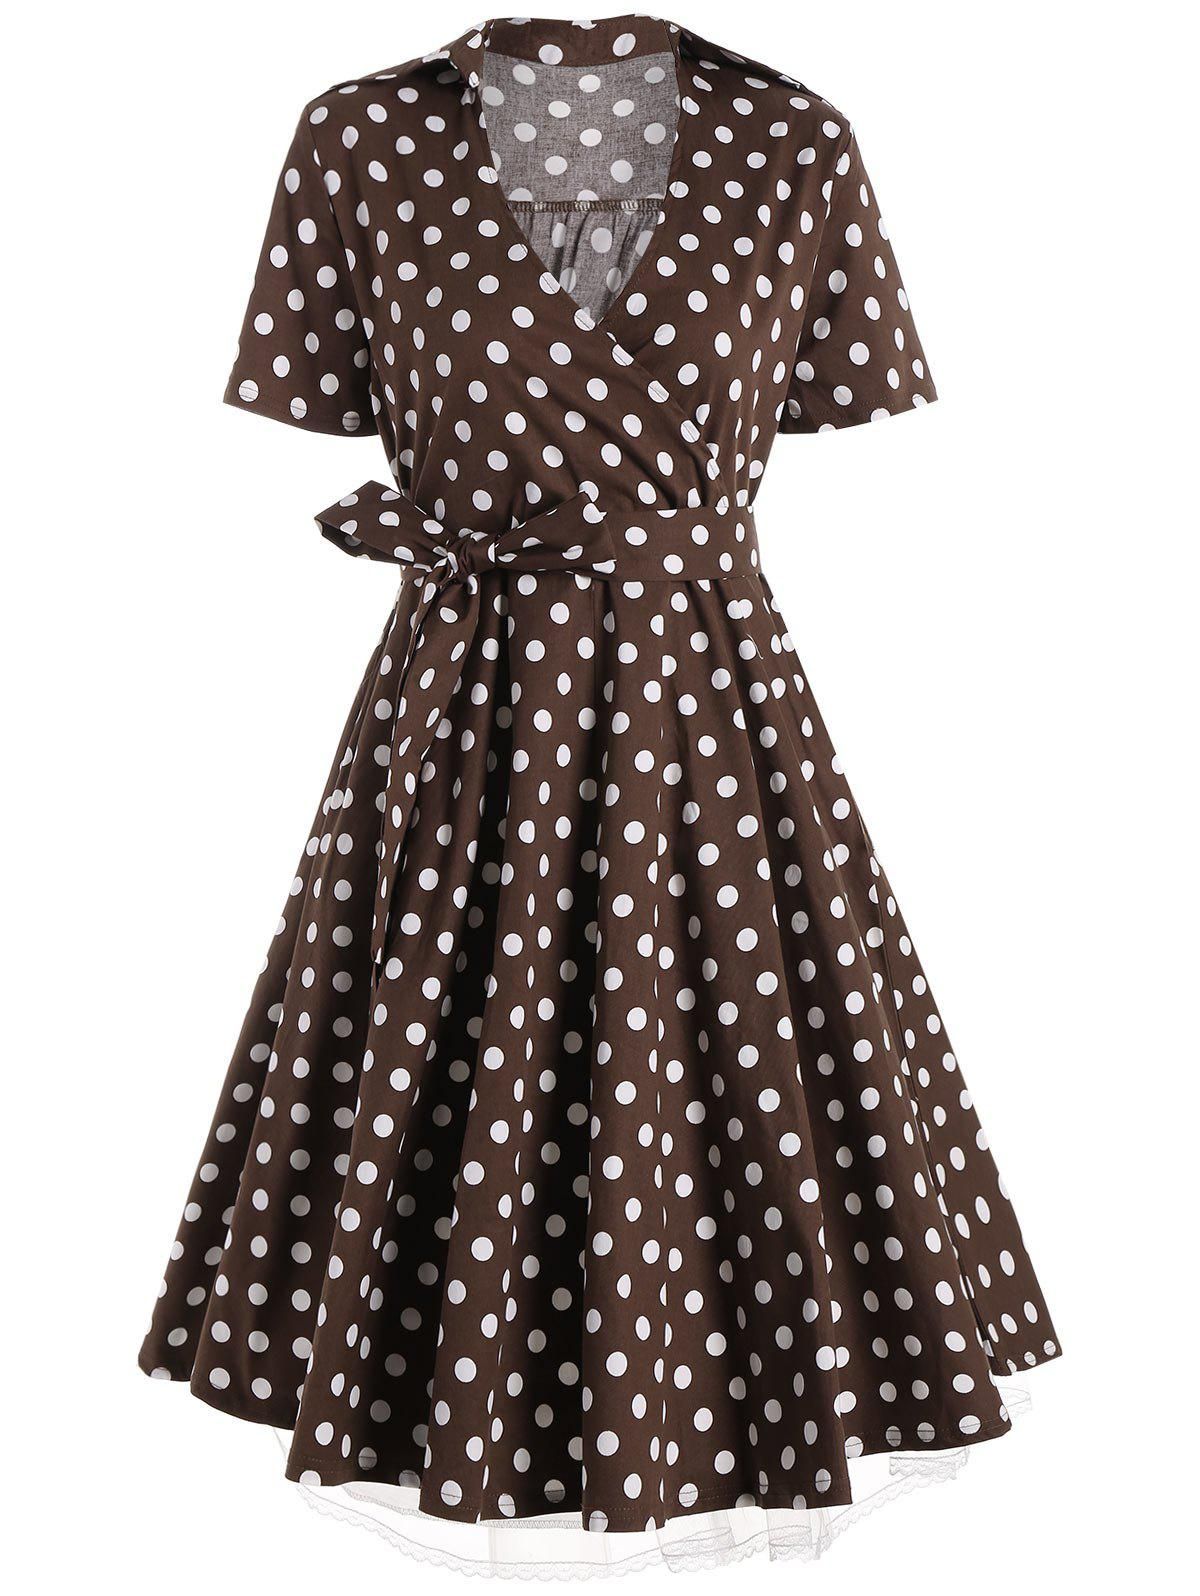 A Line Polka Dot Plus Size DressWOMEN<br><br>Size: XL; Color: COFFEE; Style: Vintage; Material: Polyester; Silhouette: A-Line; Dresses Length: Knee-Length; Neckline: V-Neck; Sleeve Length: Short Sleeves; Pattern Type: Polka Dot; Placement Print: No; With Belt: Yes; Season: Summer; Weight: 0.4500kg; Package Contents: 1 x Dress  1 x Belt;